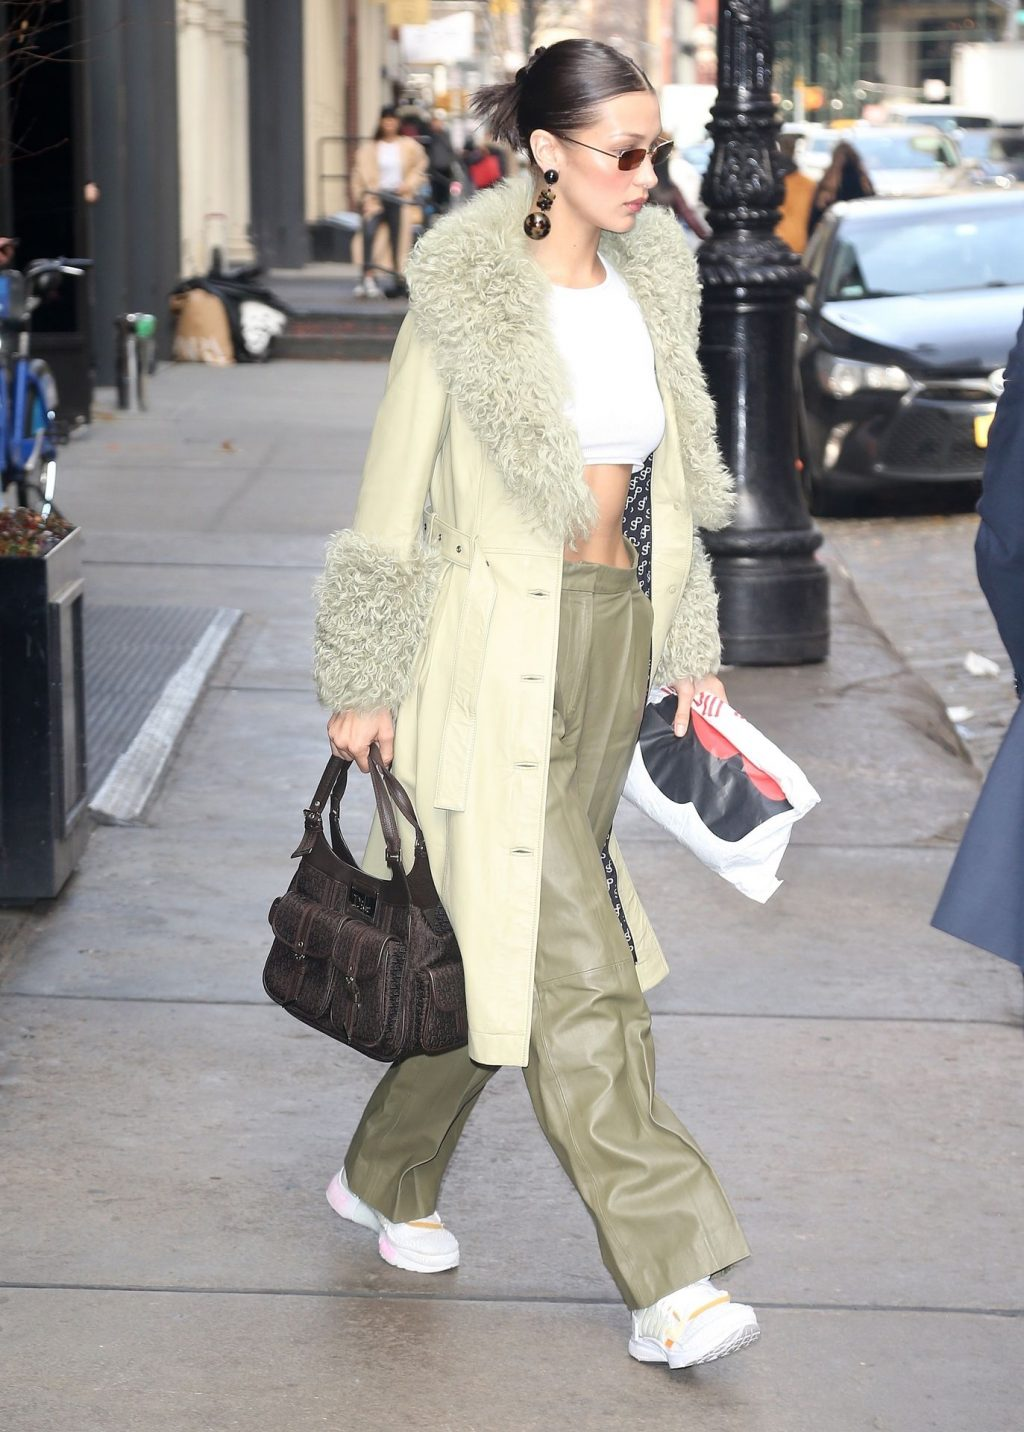 Bella Hadid See through The Fappening Blog 38 1024x1432 - Braless Bella Hadid Arrives at the Park Avenue Armory for the Marc Jacobs Fashion Show (59 Photos)